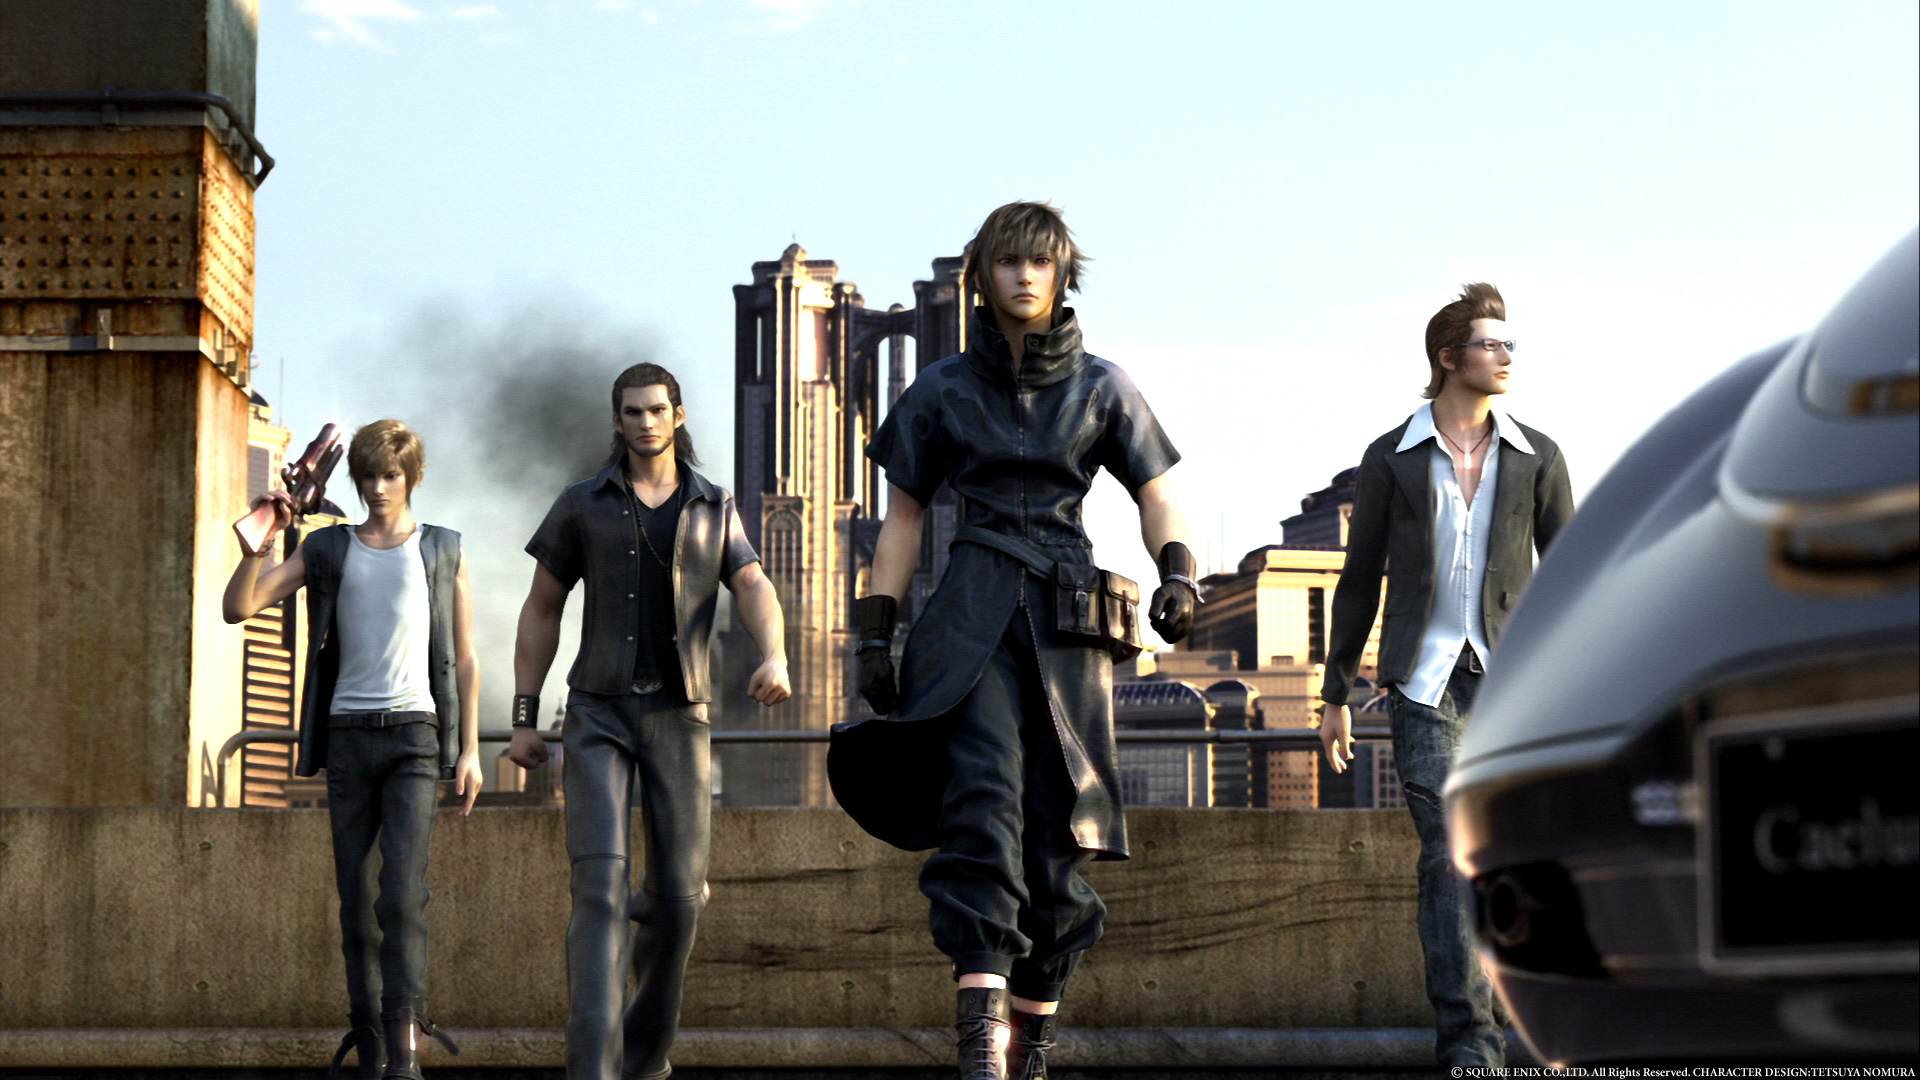 final fantasy xv - zerochan anime image board